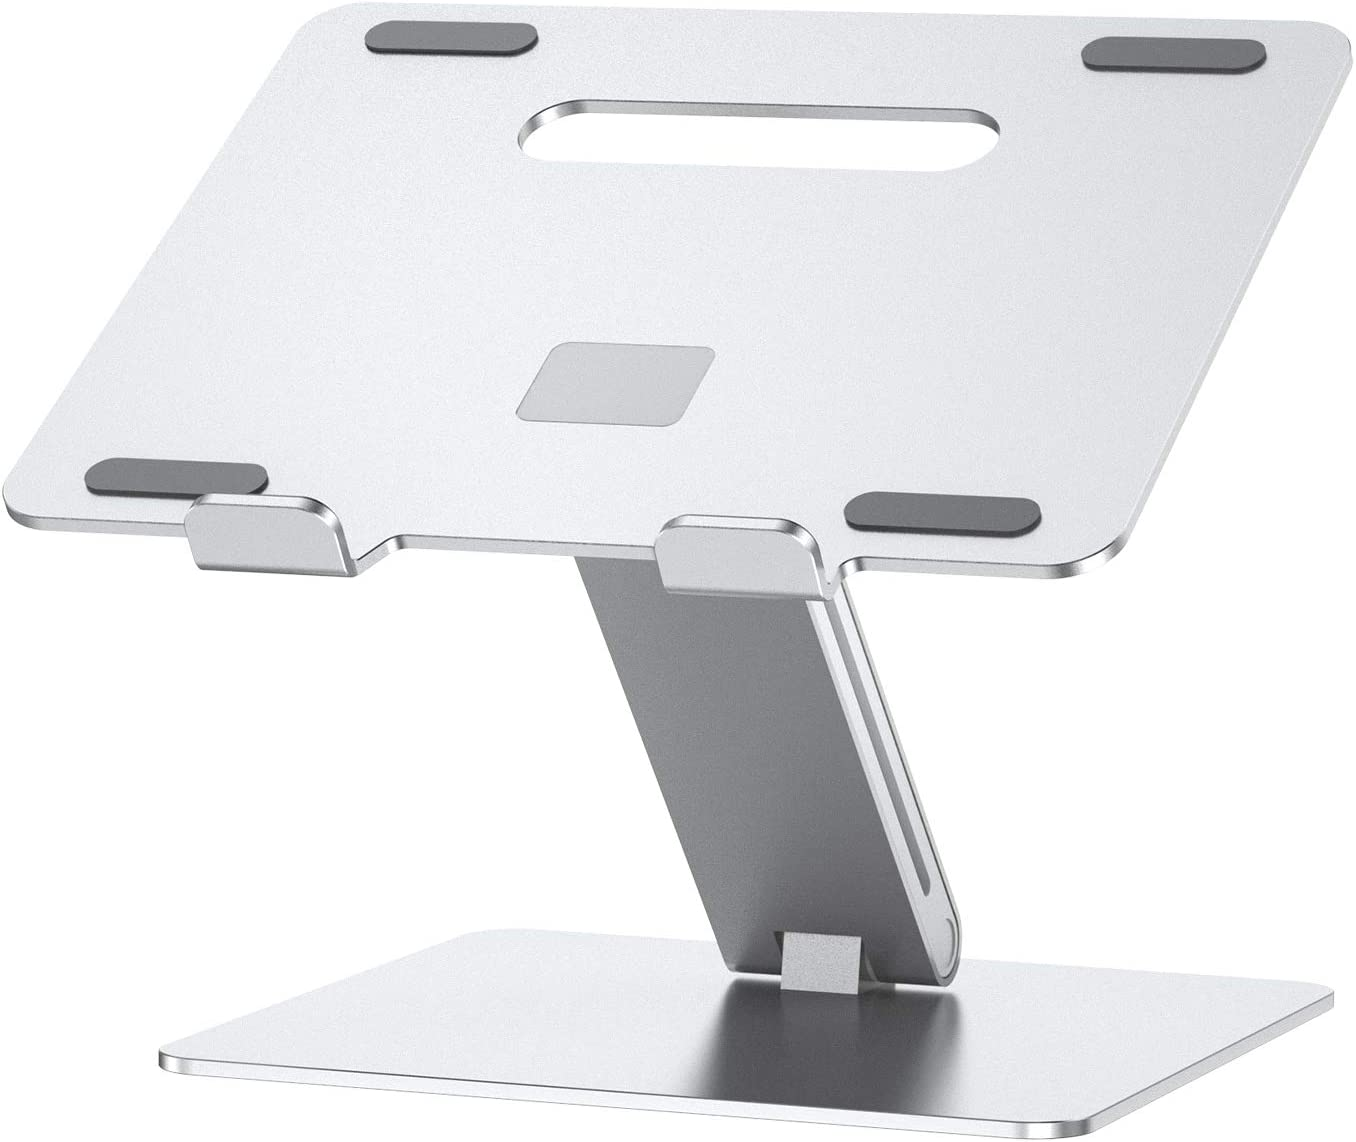 "Jubor Laptop Stand, Ergonomic Computer Stand Aluminum Laptop Mount, Foldable Laptop Riser Notebook Holder Stand Compatible with MacBook Air Pro, Dell XPS, Lenovo More 10-17.3"" Laptops"